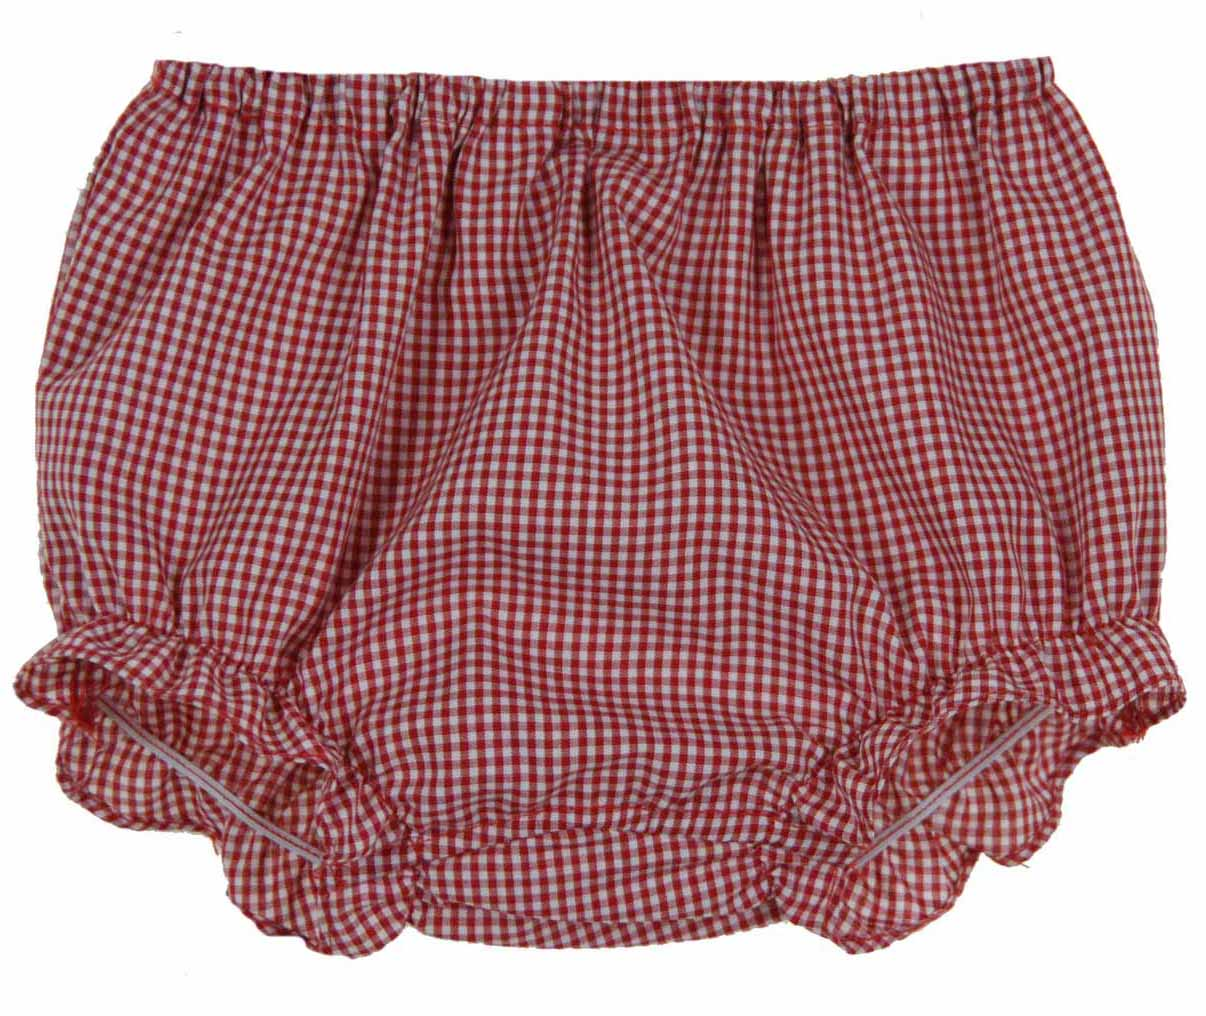 Rosalina red checked gingham ruffle bottom diaper cover,baby girls ...